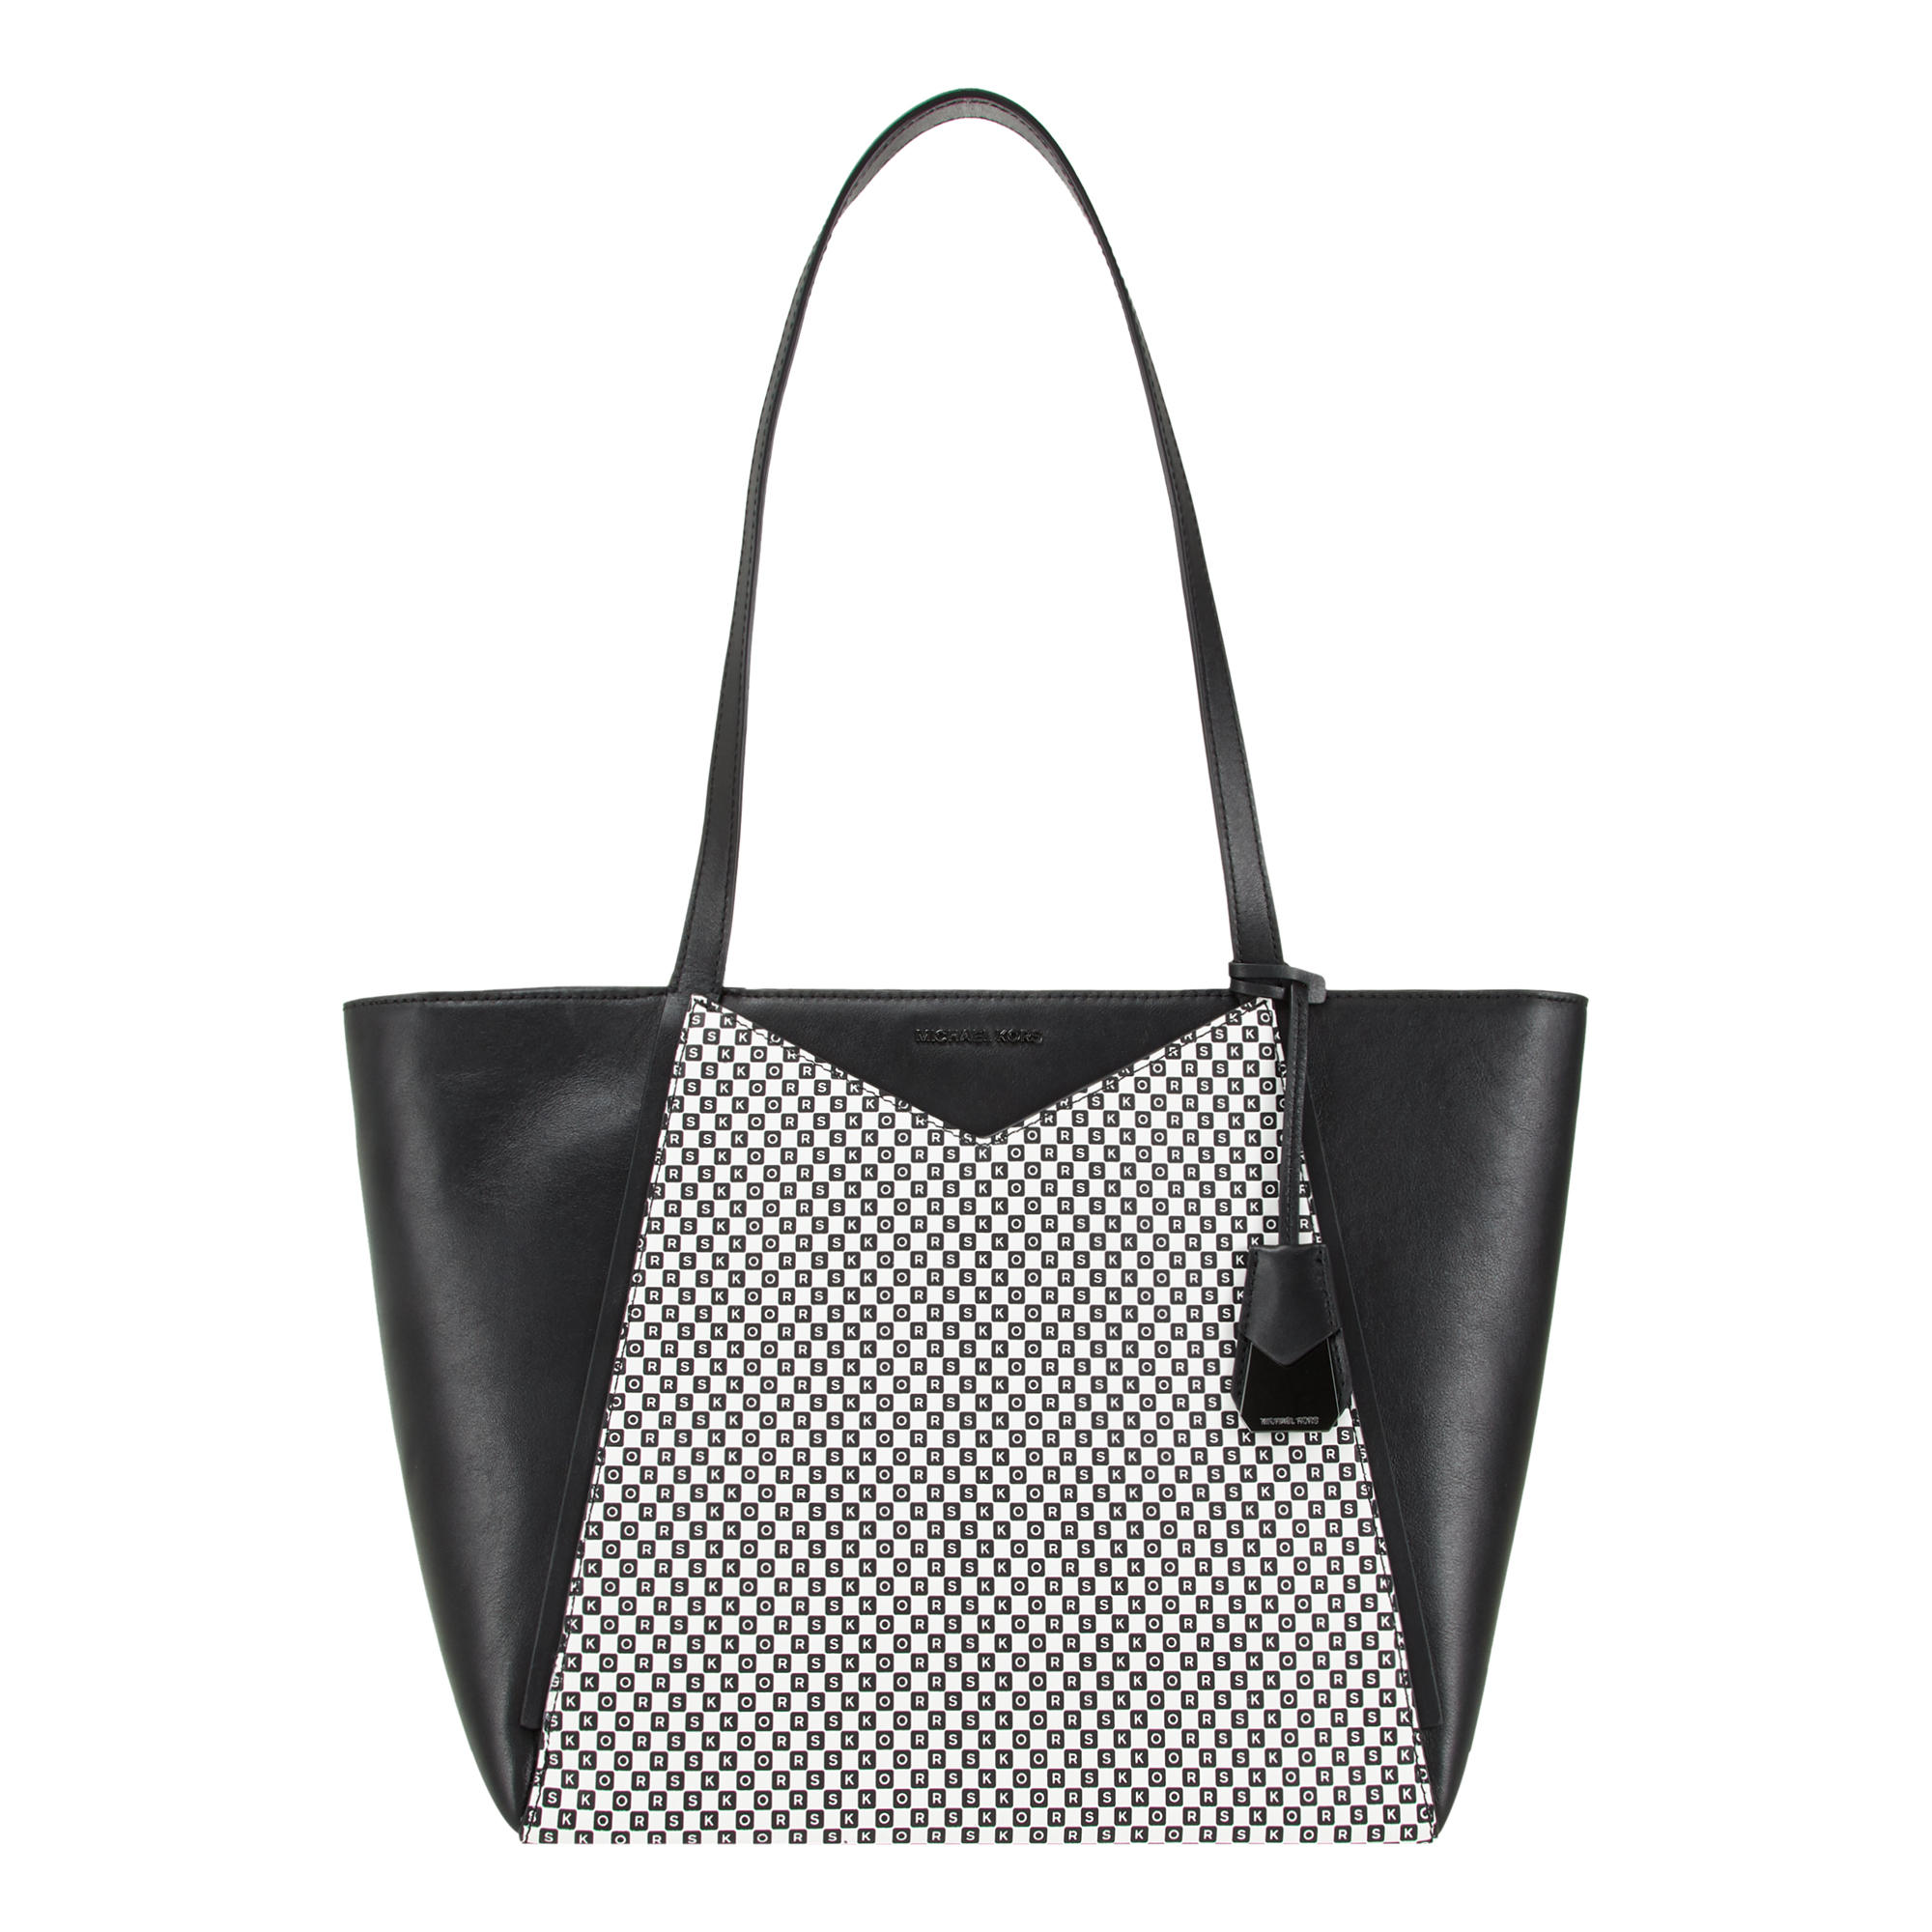 138906016: Checkerboard Whitney Tote